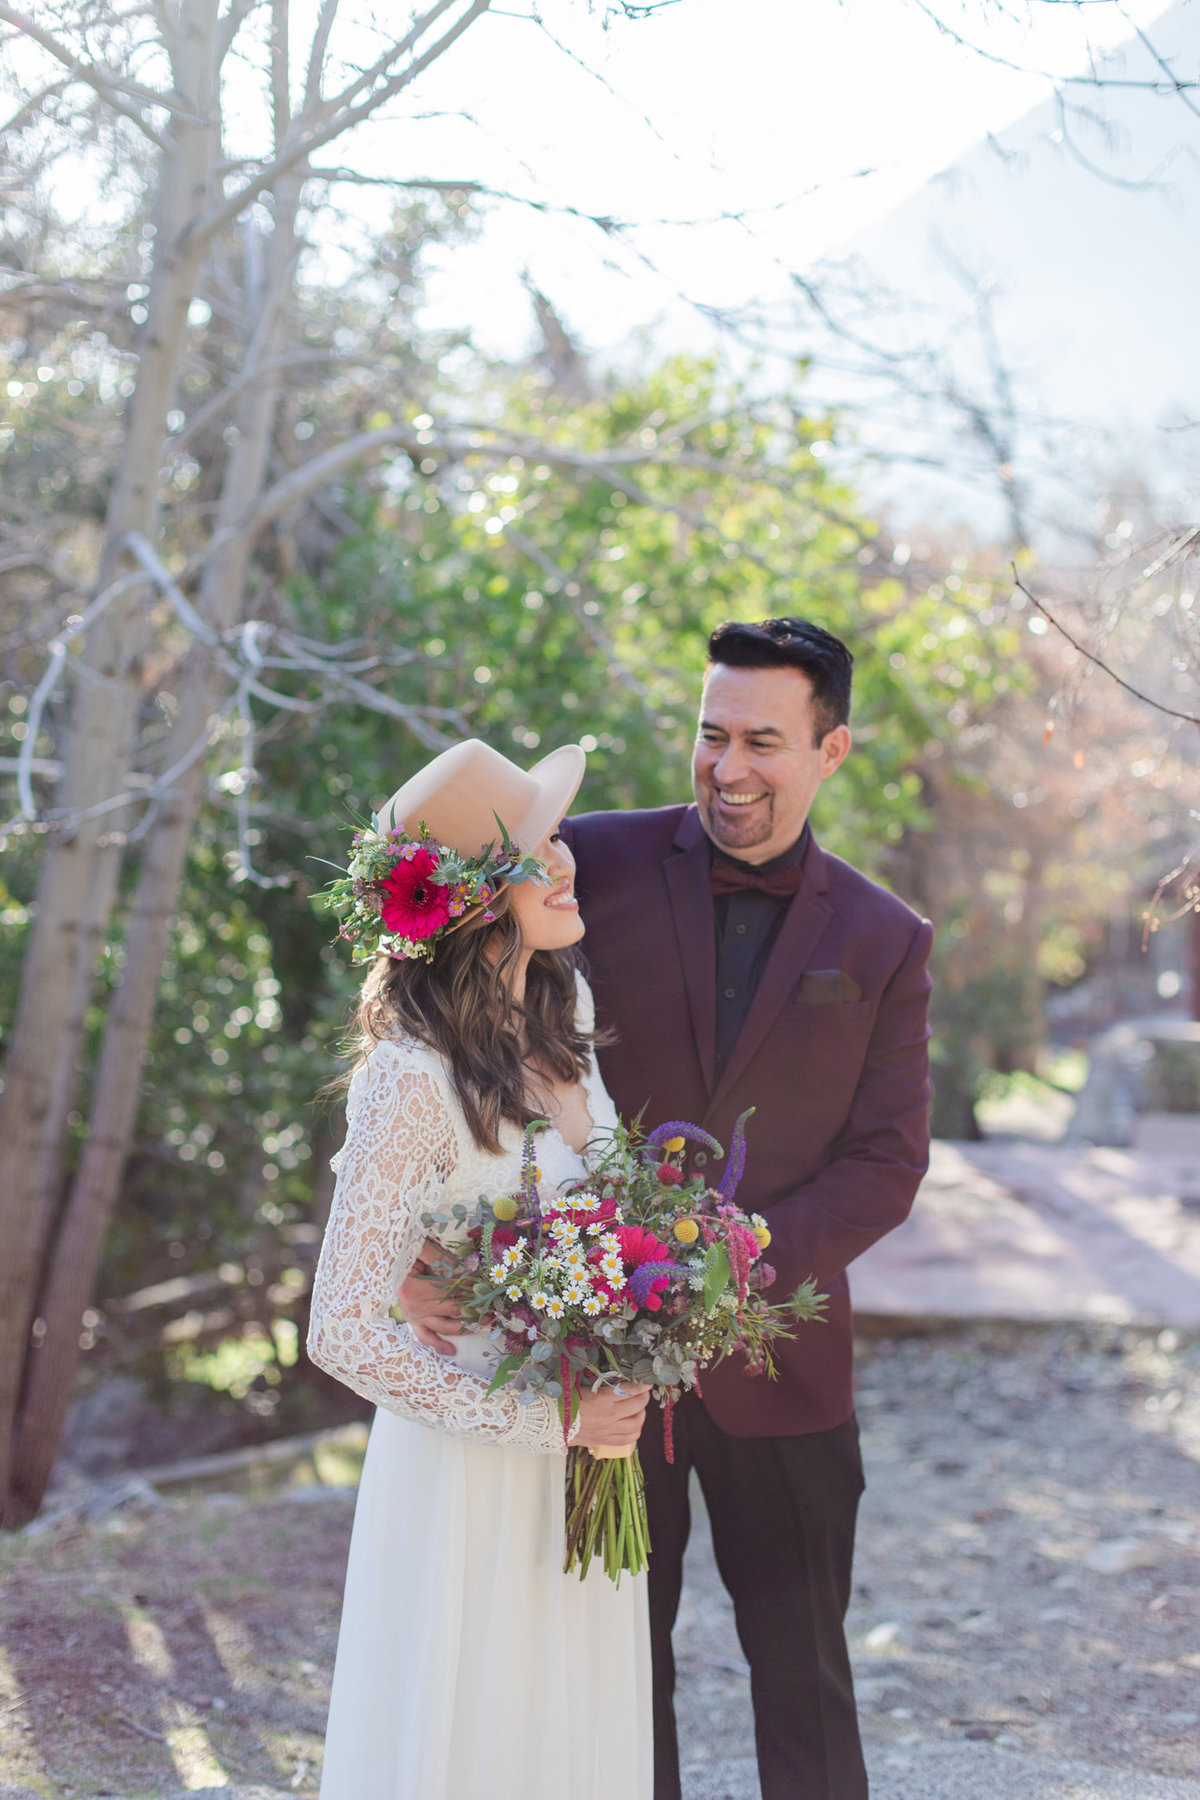 Mt. Baldy Elopement, Mt. Baldy Styled Shoot, Mt. Baldy Wedding, Forest Elopement, Forest Wedding, Boho Wedding, Boho Elopement, Mt. Baldy Boho, Forest Boho, Woodland Boho-4